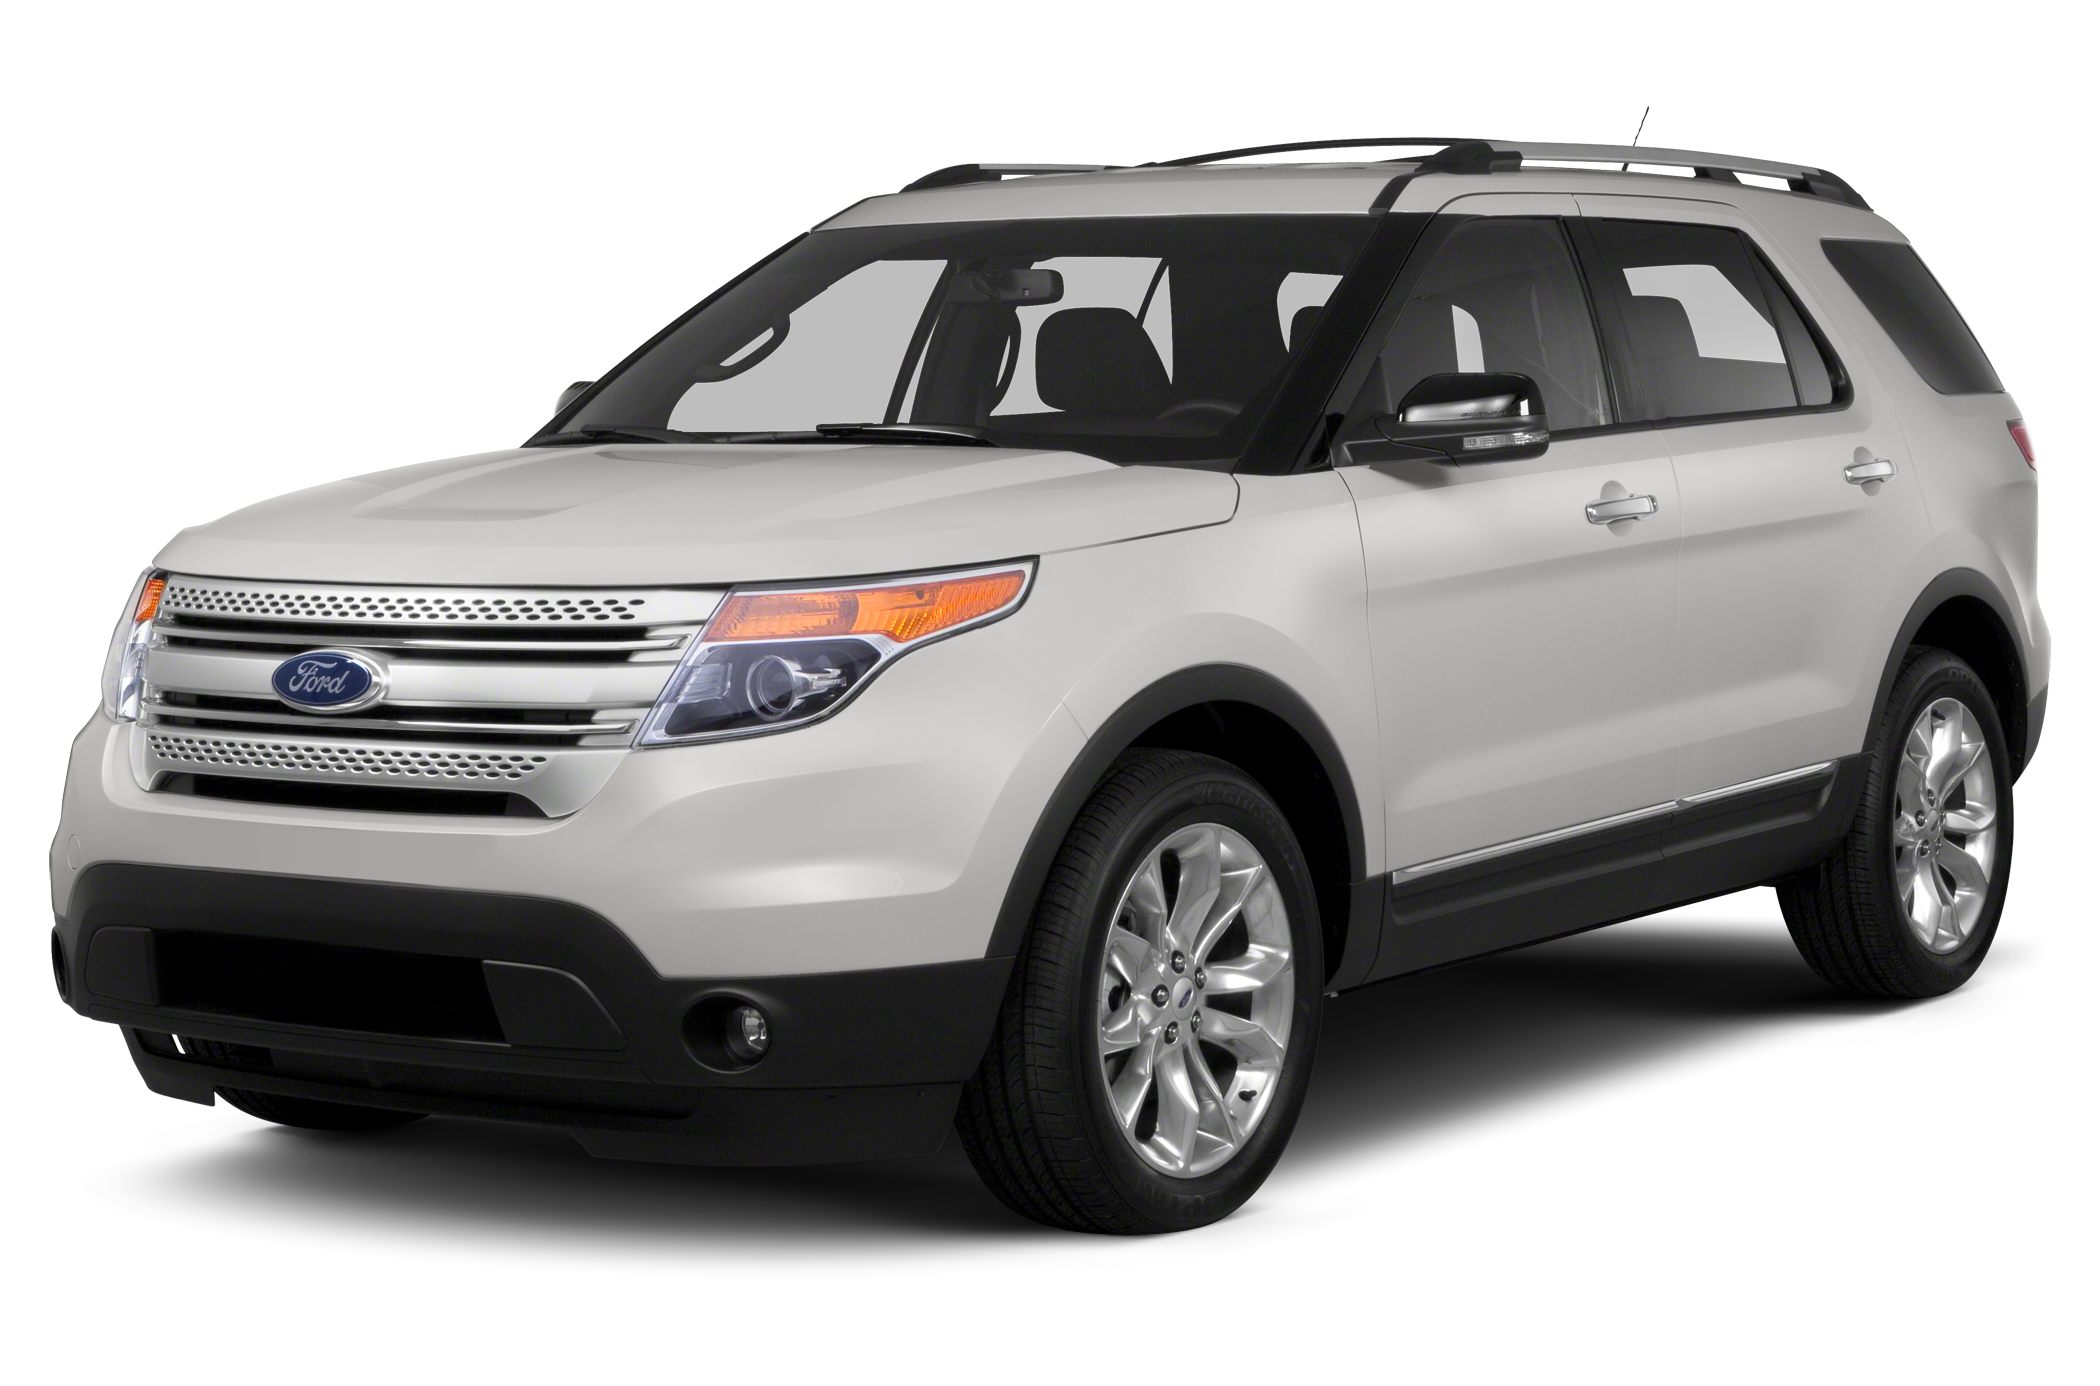 2013 ford explorer safety features